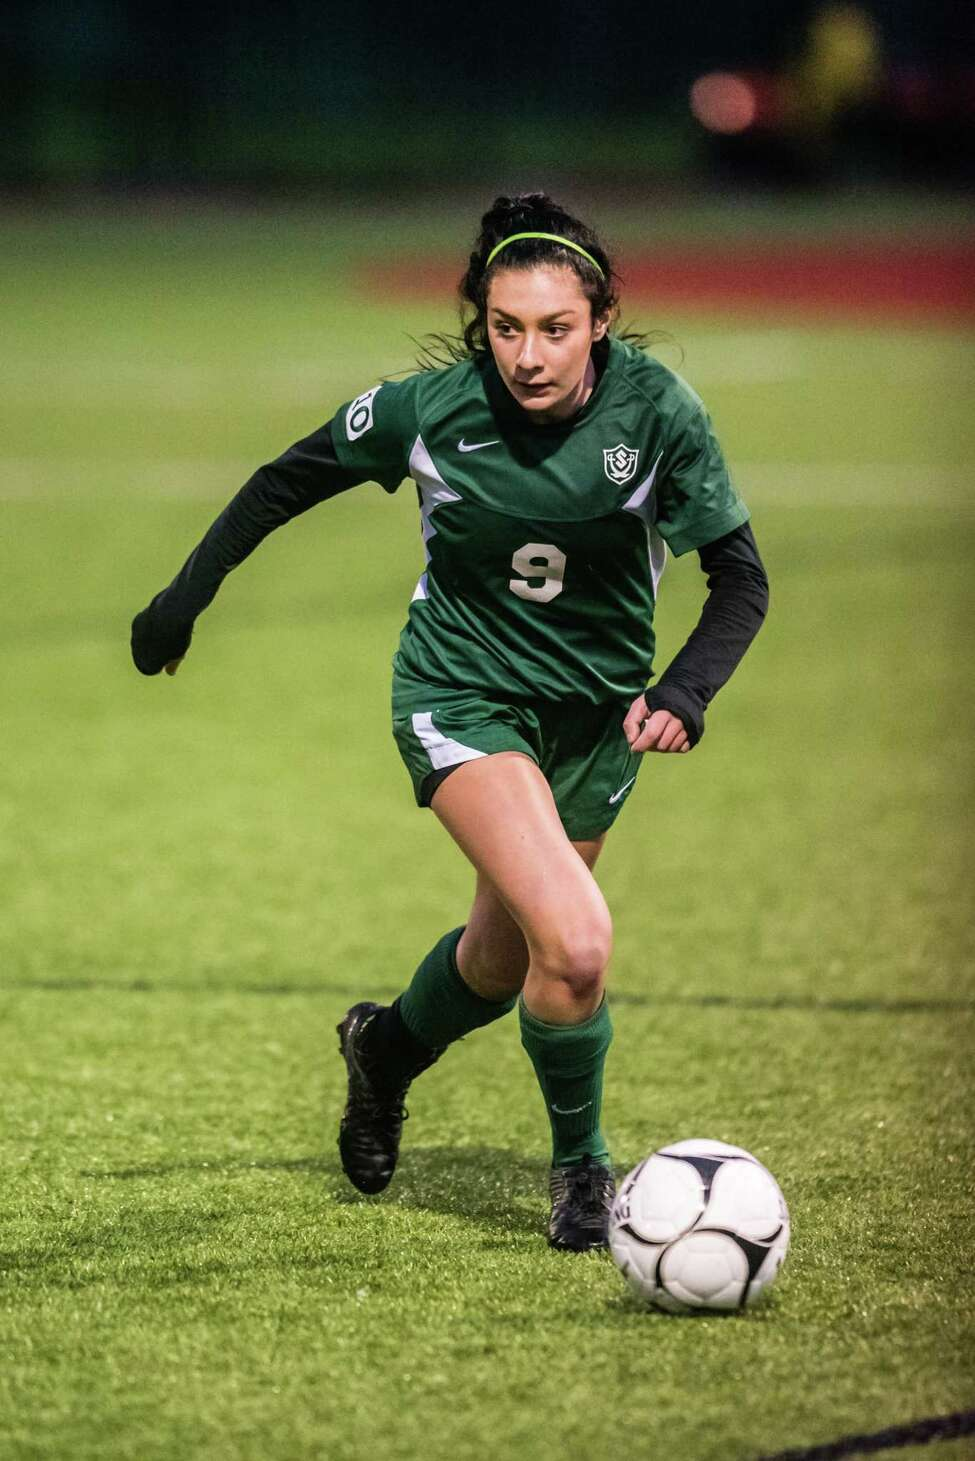 Schalmont's Sofia Cassano looks for an opening against Voorheesville as the class b girls' soccer semifinals were held at Lansingburgh High School in Troy, NY Tuesday, October 23rd, 2018. Photo by Eric Jenks for the Times Union